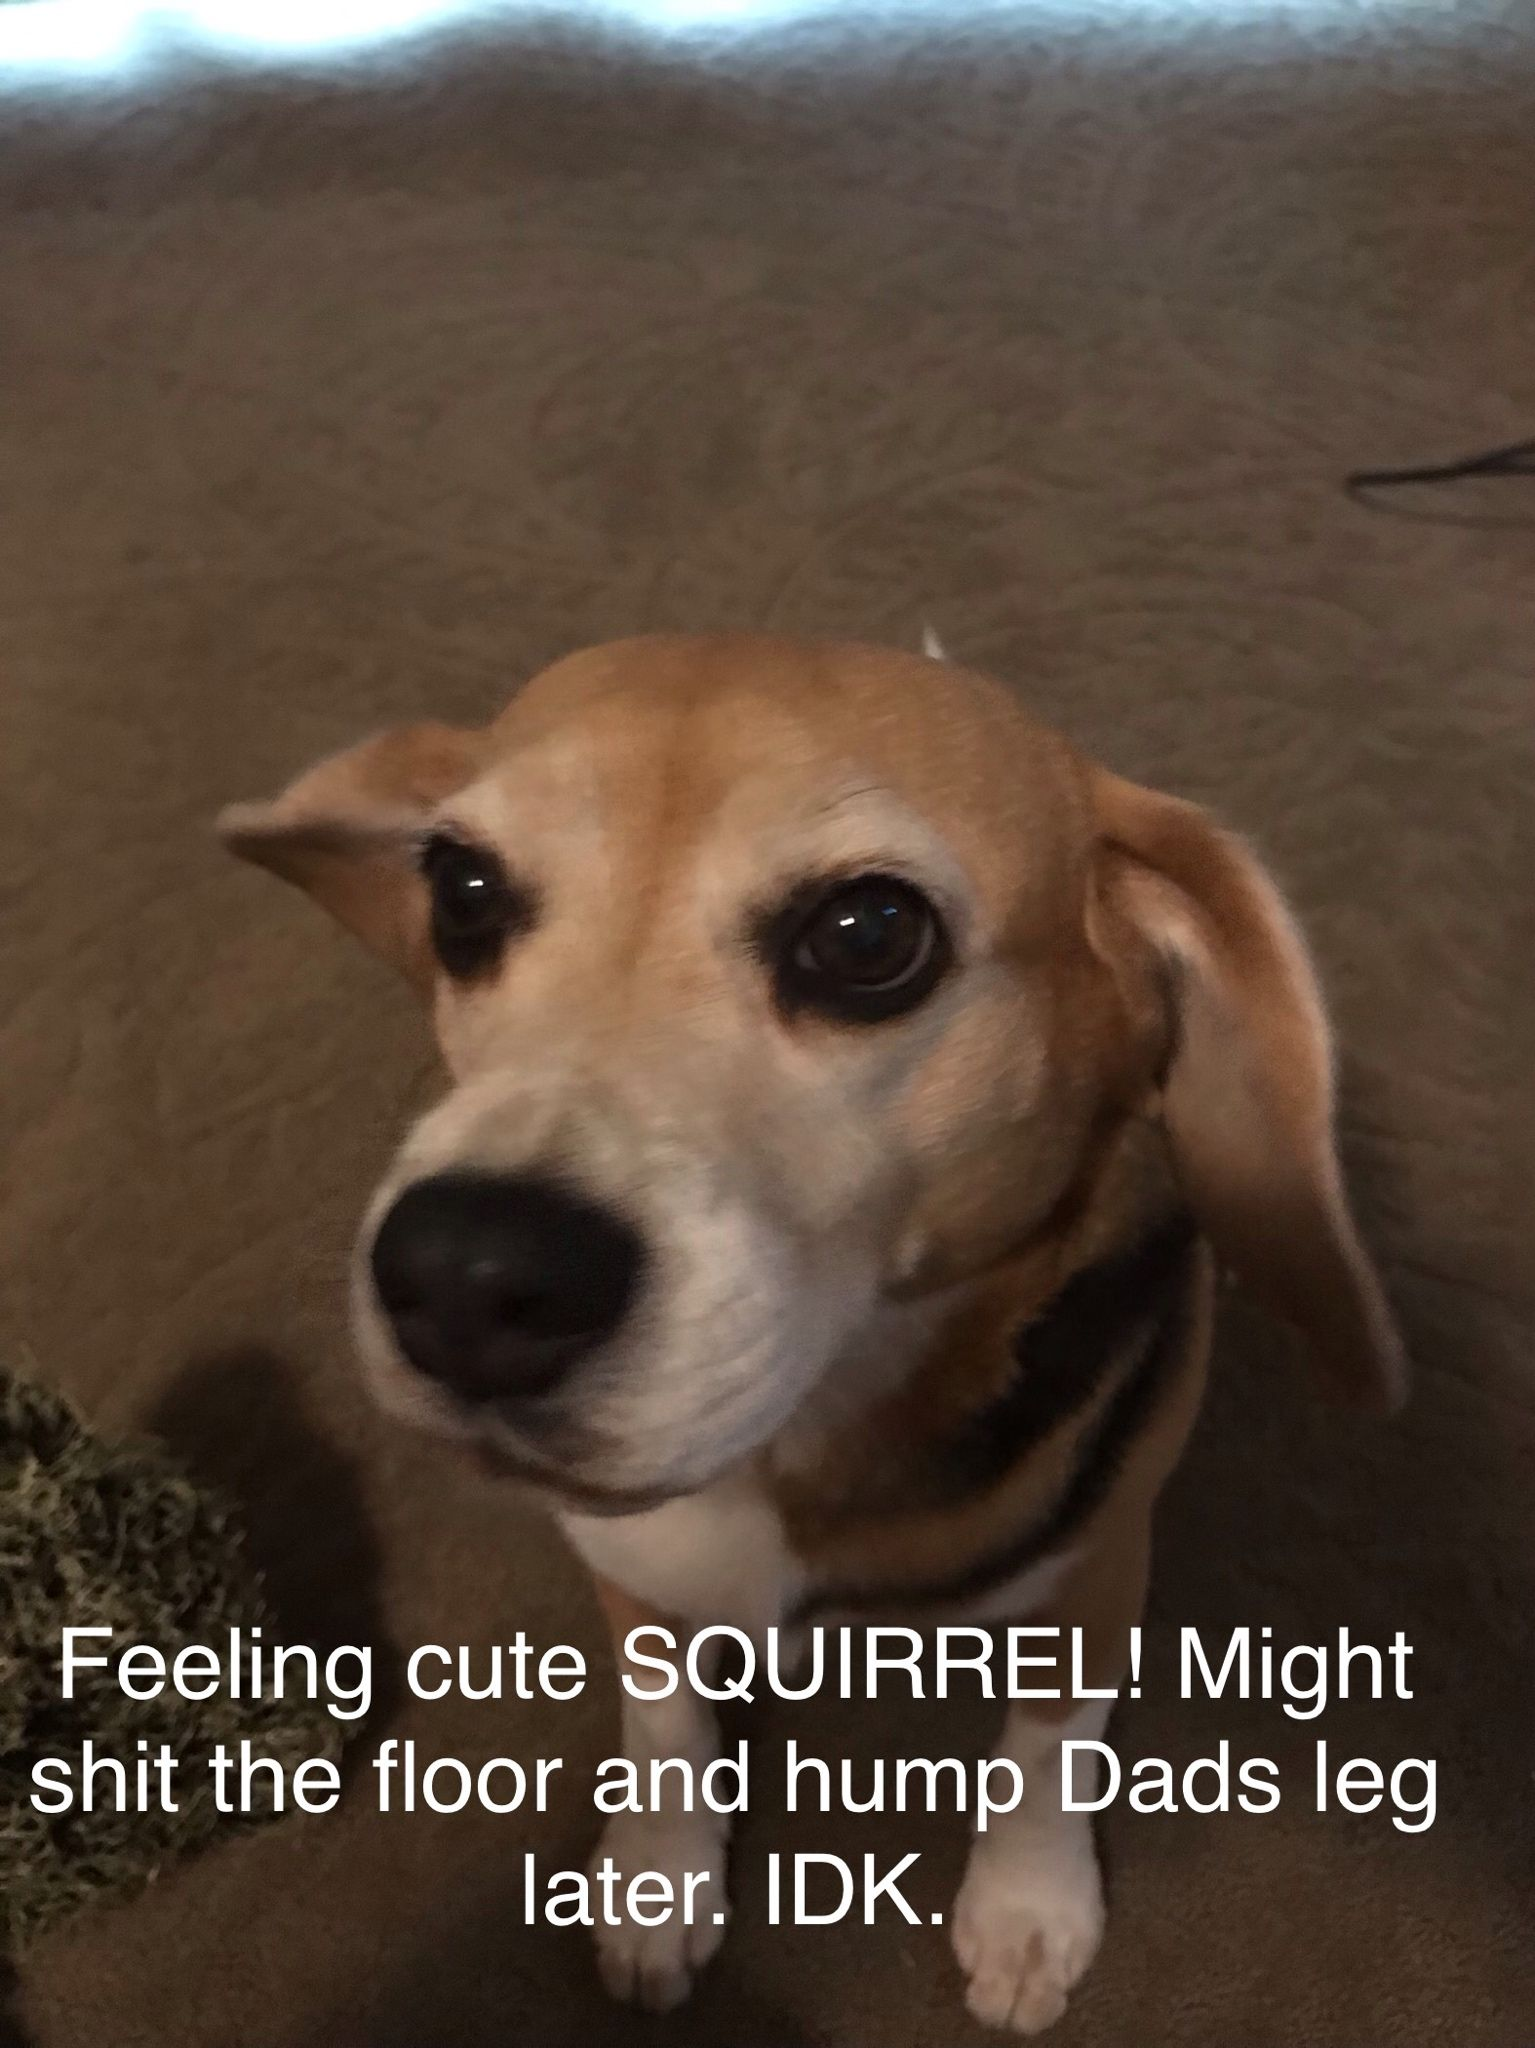 Quail Dog Training With Images Dogs Cute Squirrel